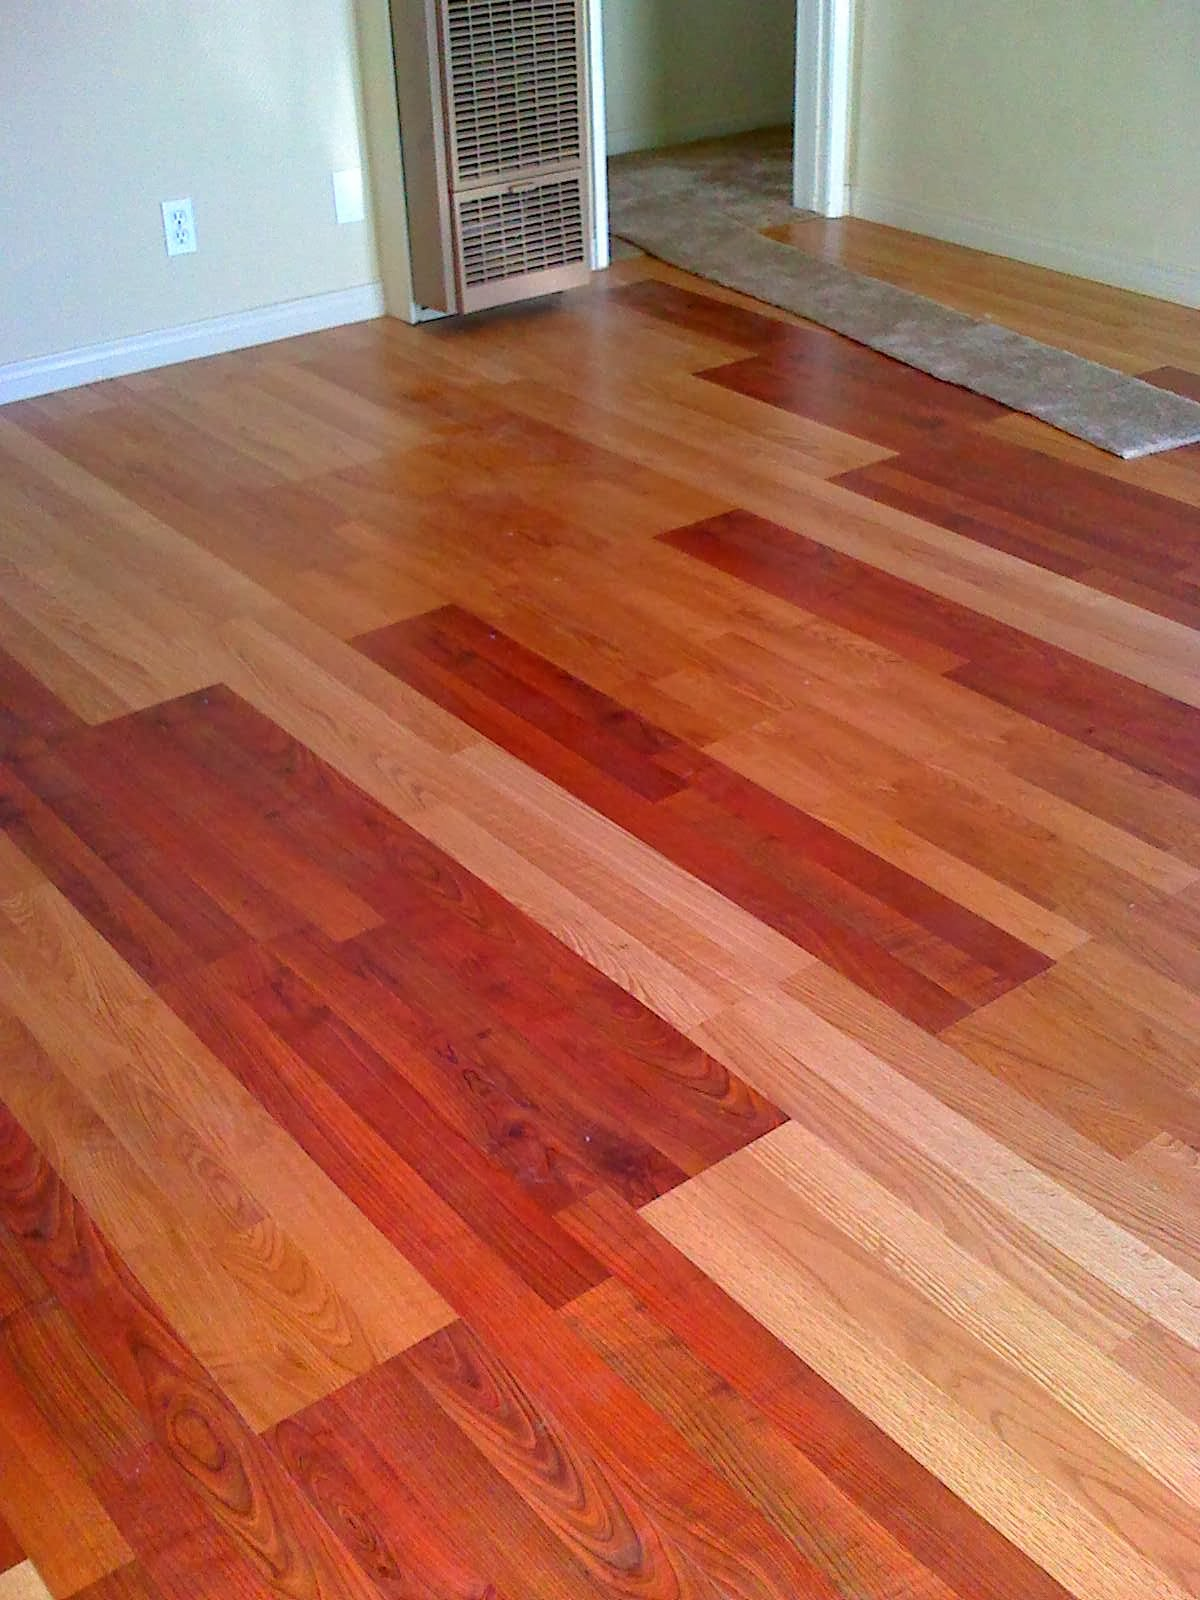 B t carpet and linoleum 39 s flooring blog - Laminate or wood flooring ...